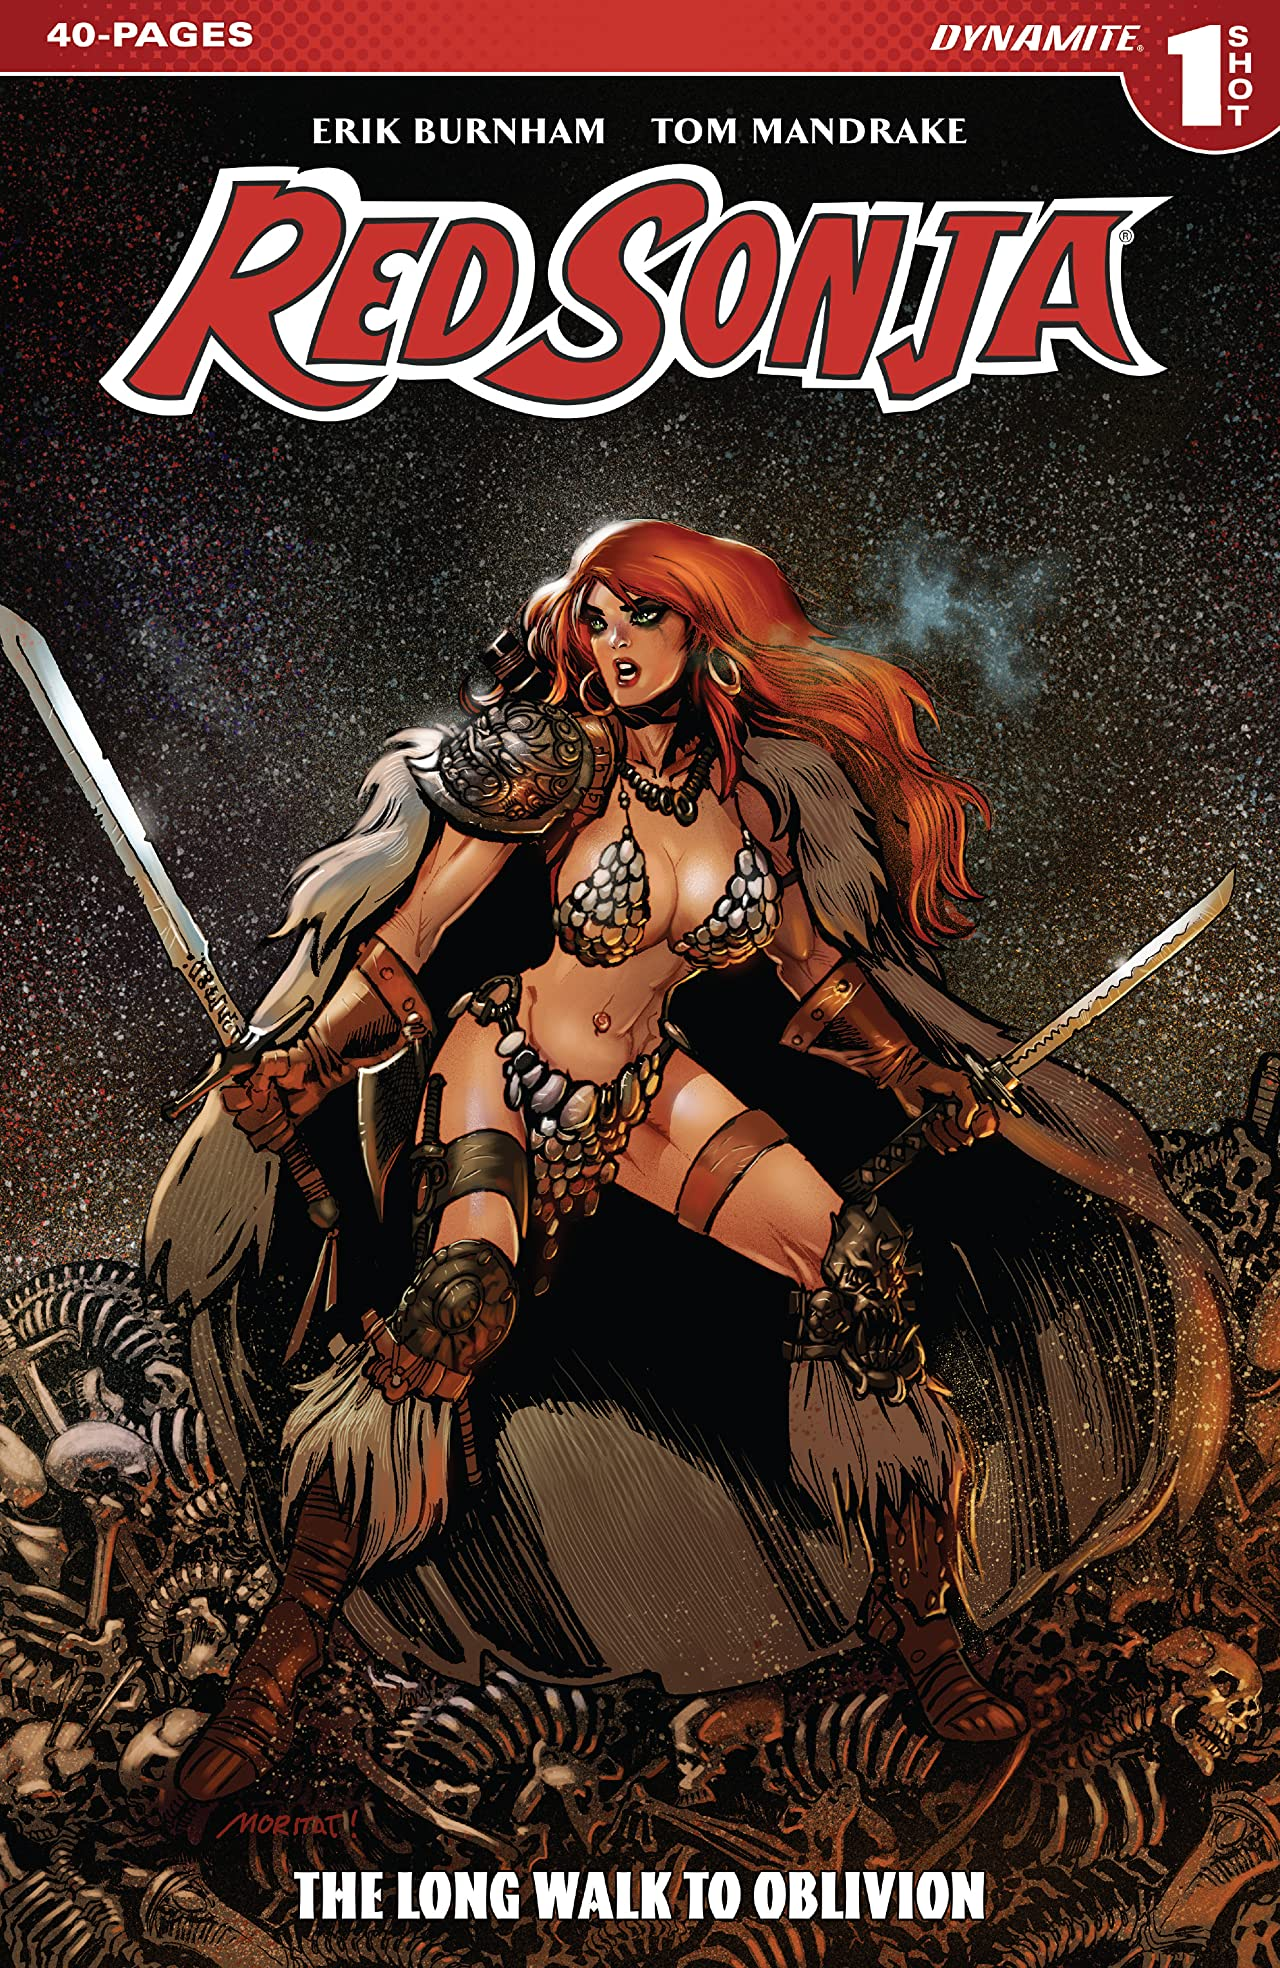 Red Sonja: The Long Walk To Oblivion